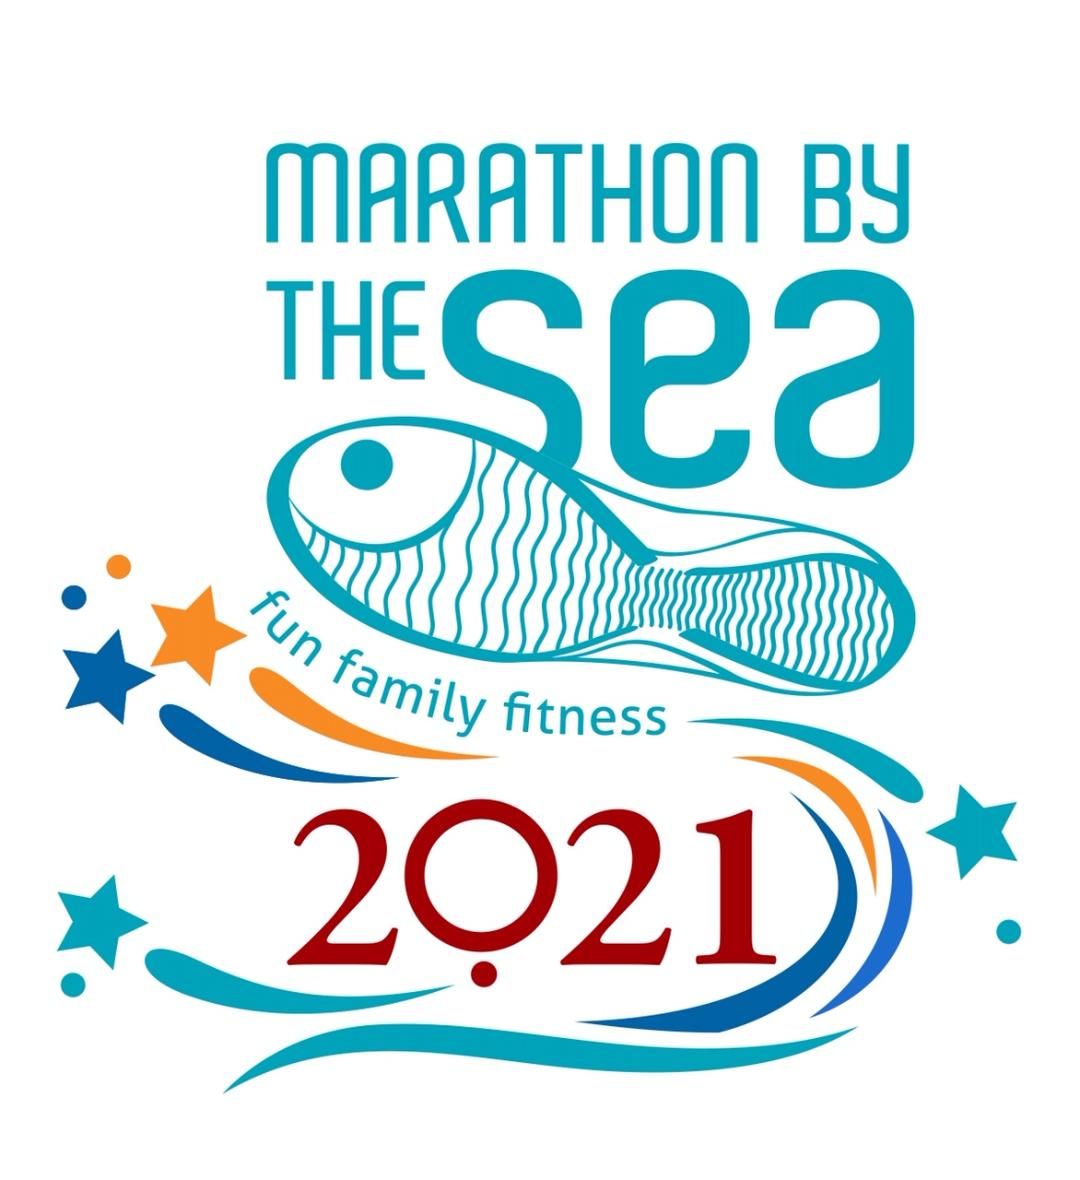 Marathon By The Sea Race Event Weekend 2021 Logo